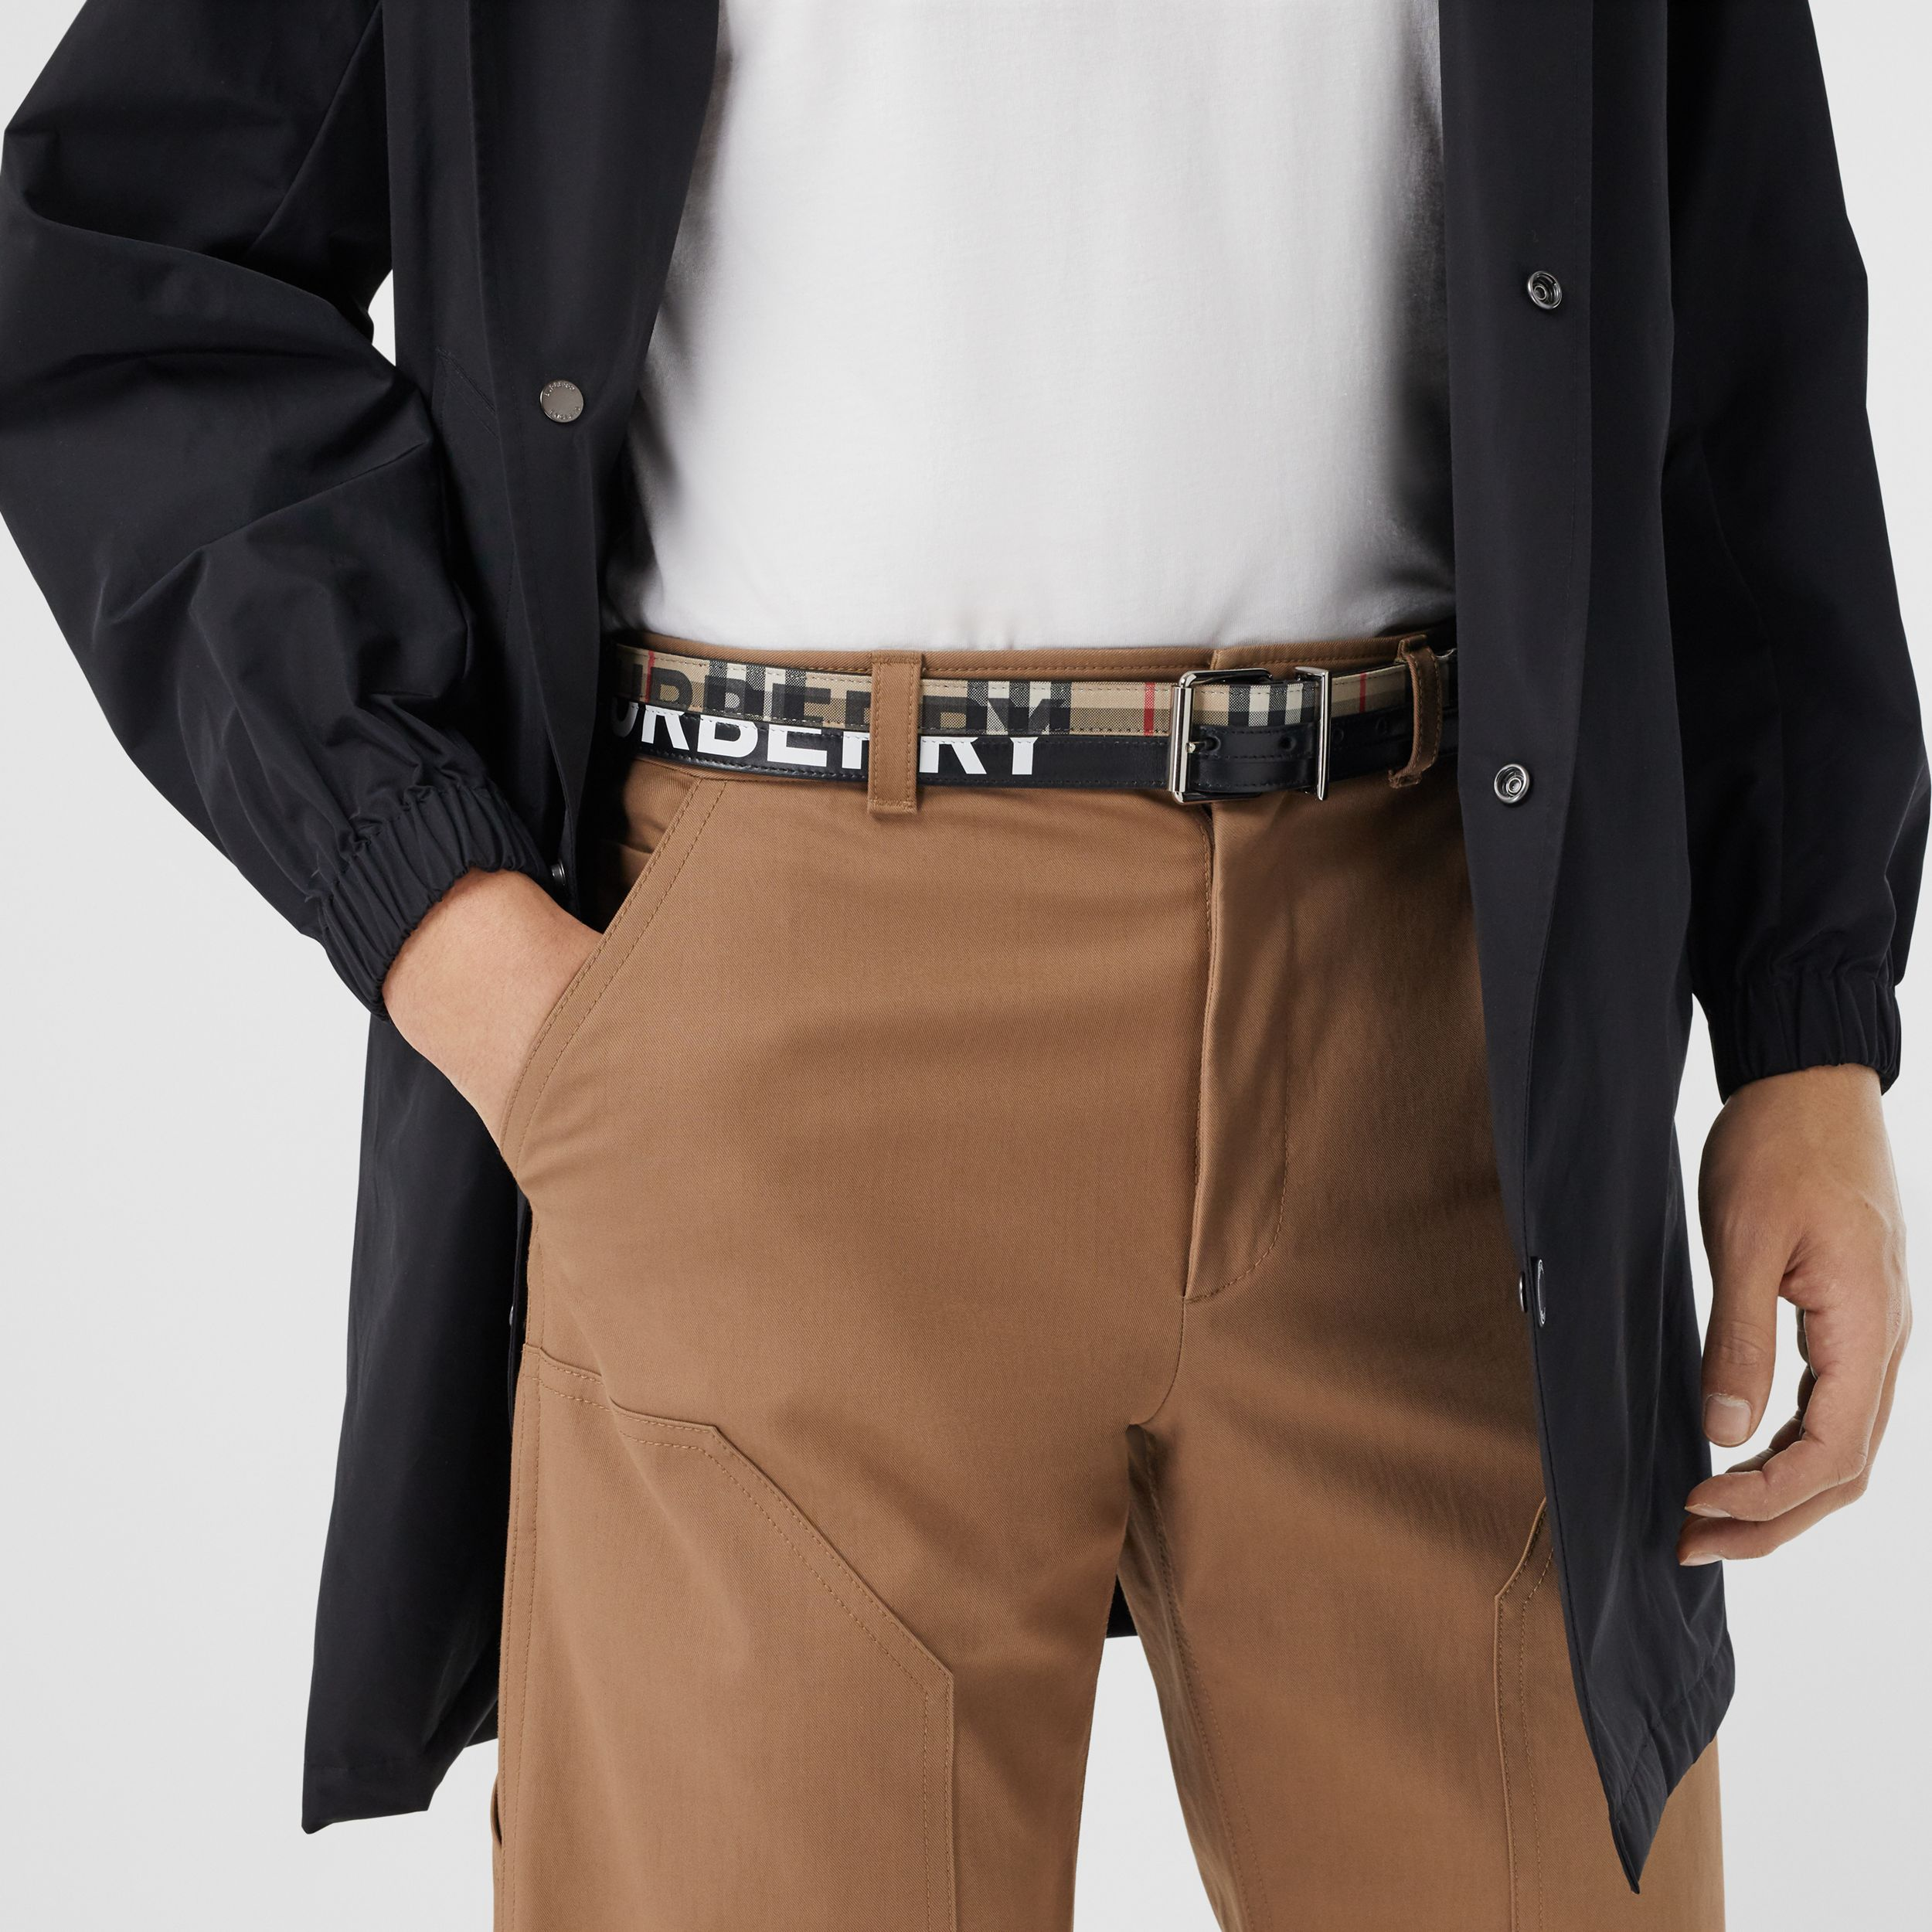 Logo Print Vintage Check and Leather Belt in Archive Beige/black - Men | Burberry Hong Kong S.A.R. - 3